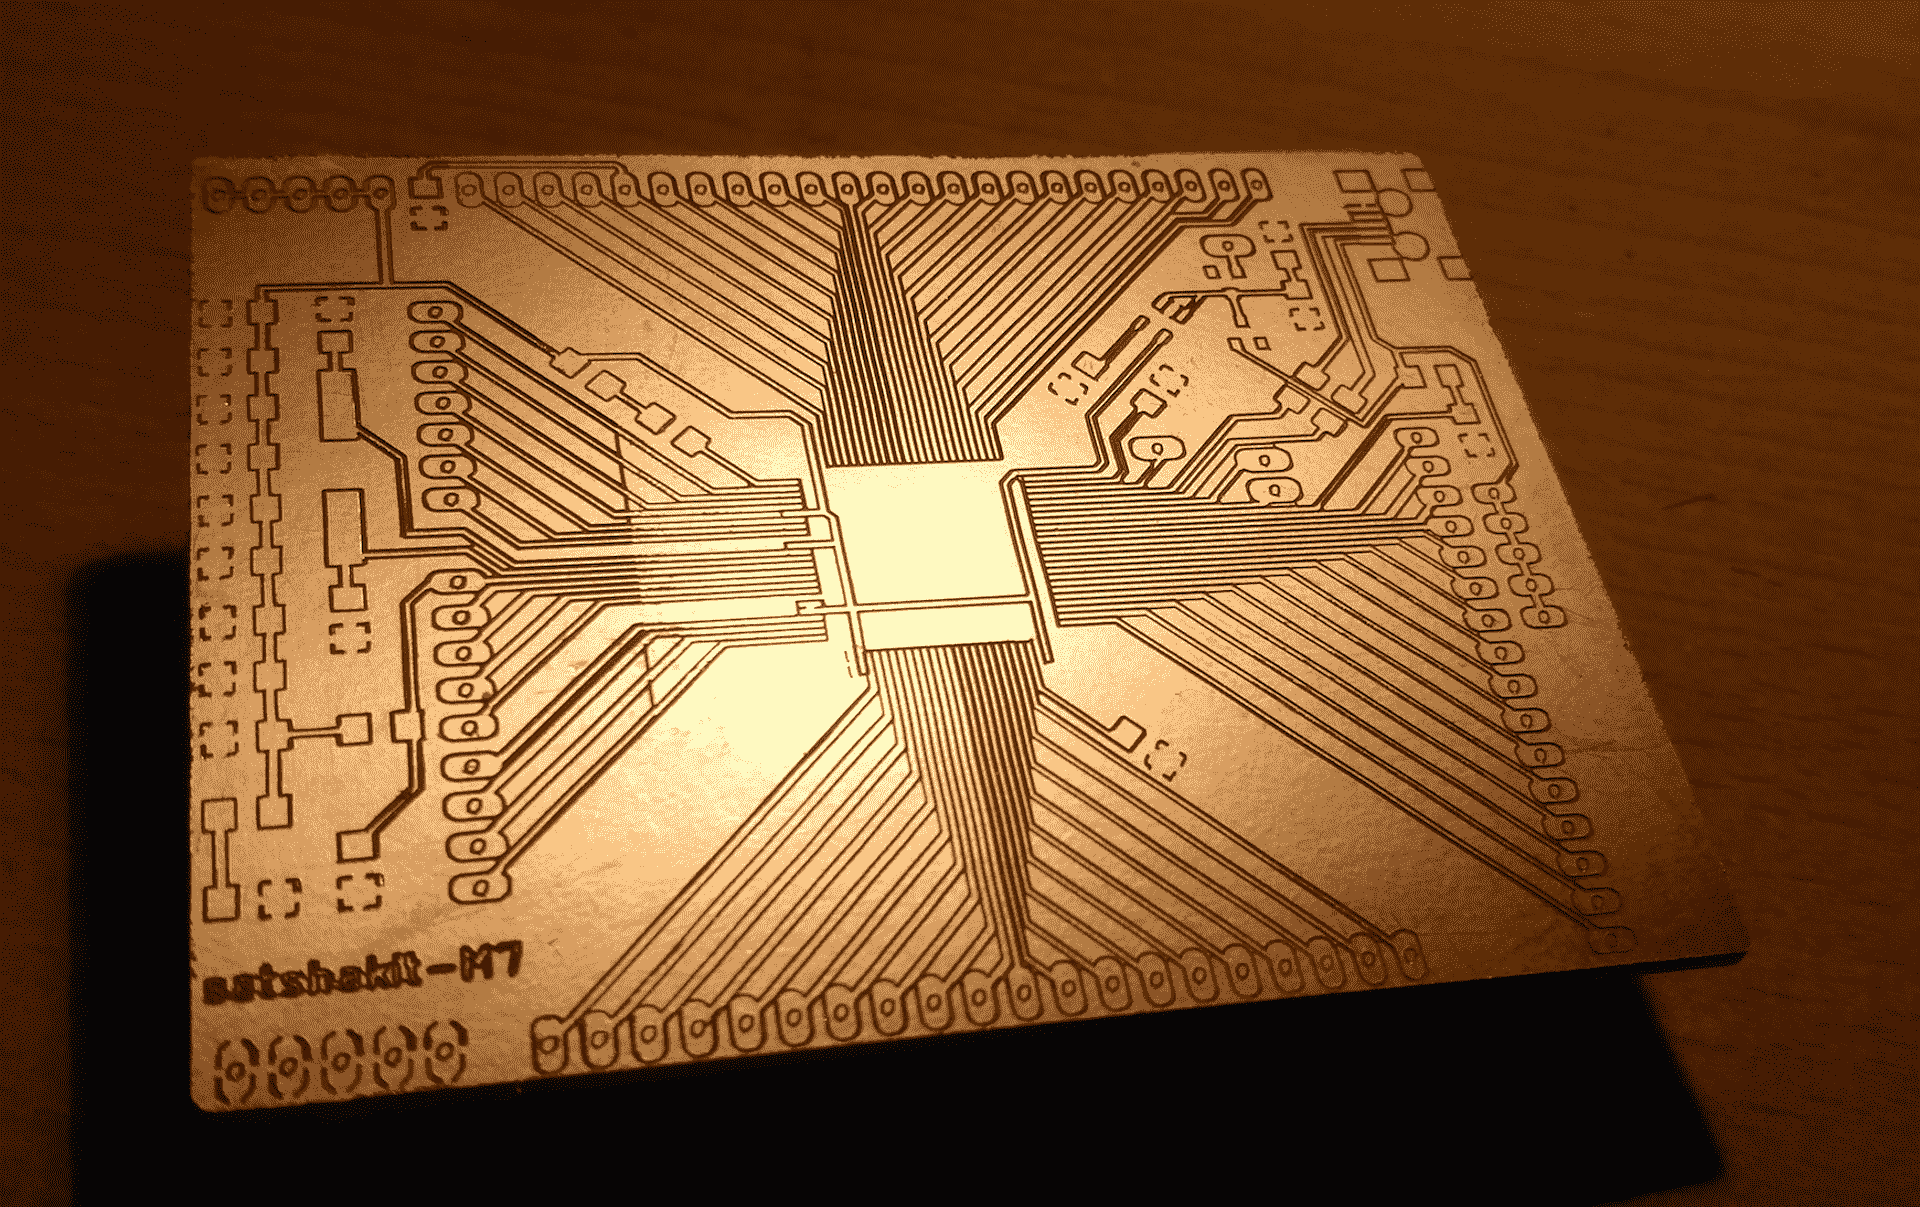 Fab Academy Circuit Boards More Canvas Art Board Pillow Roland Mdx 40a To Mill Our Pcb Have In Order Work With This Machine We Need A Gcode Generate Had 2 Files